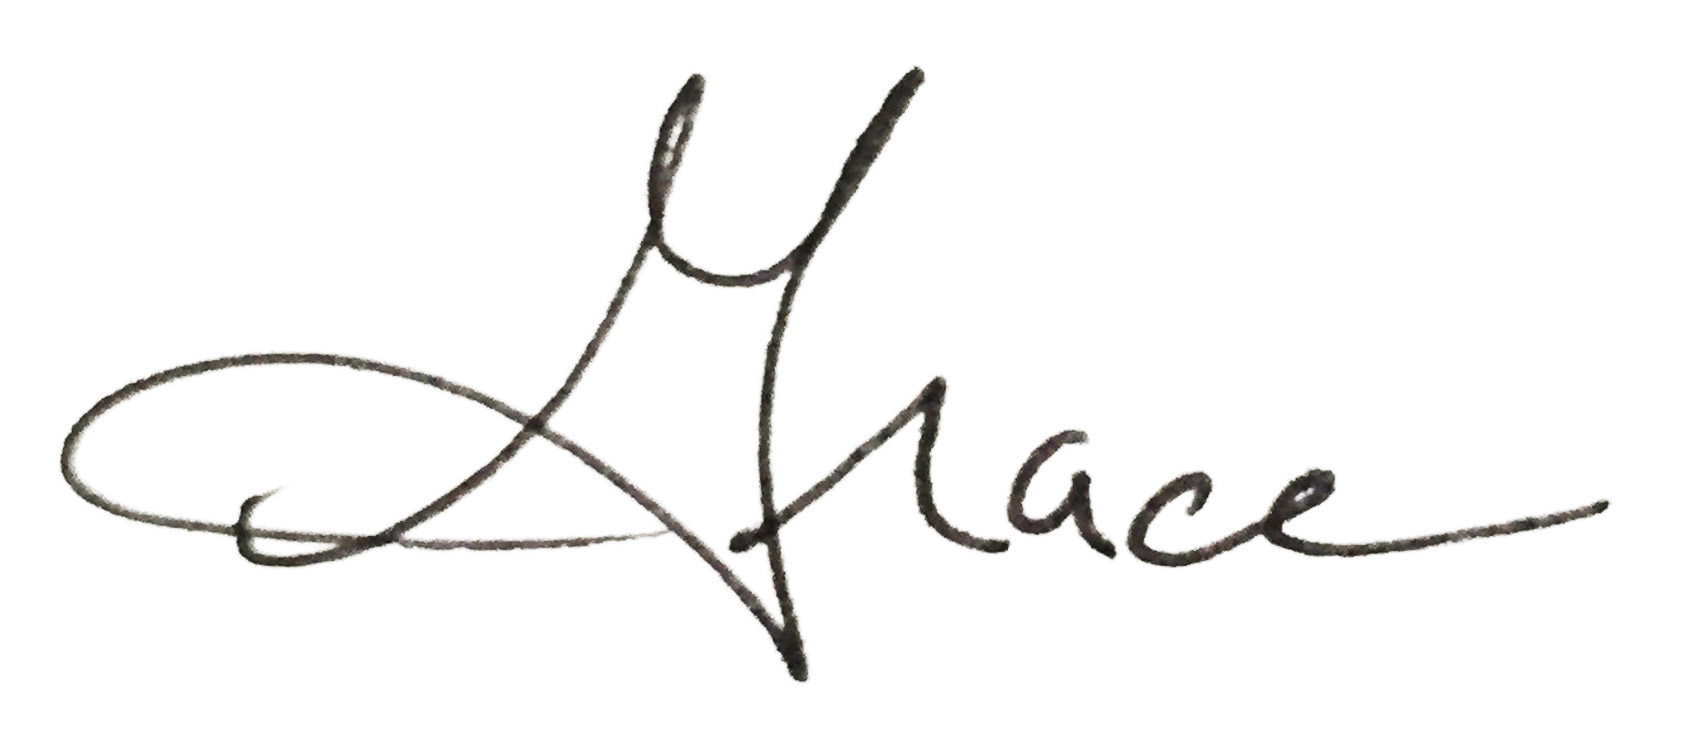 GraceSignature.jpg